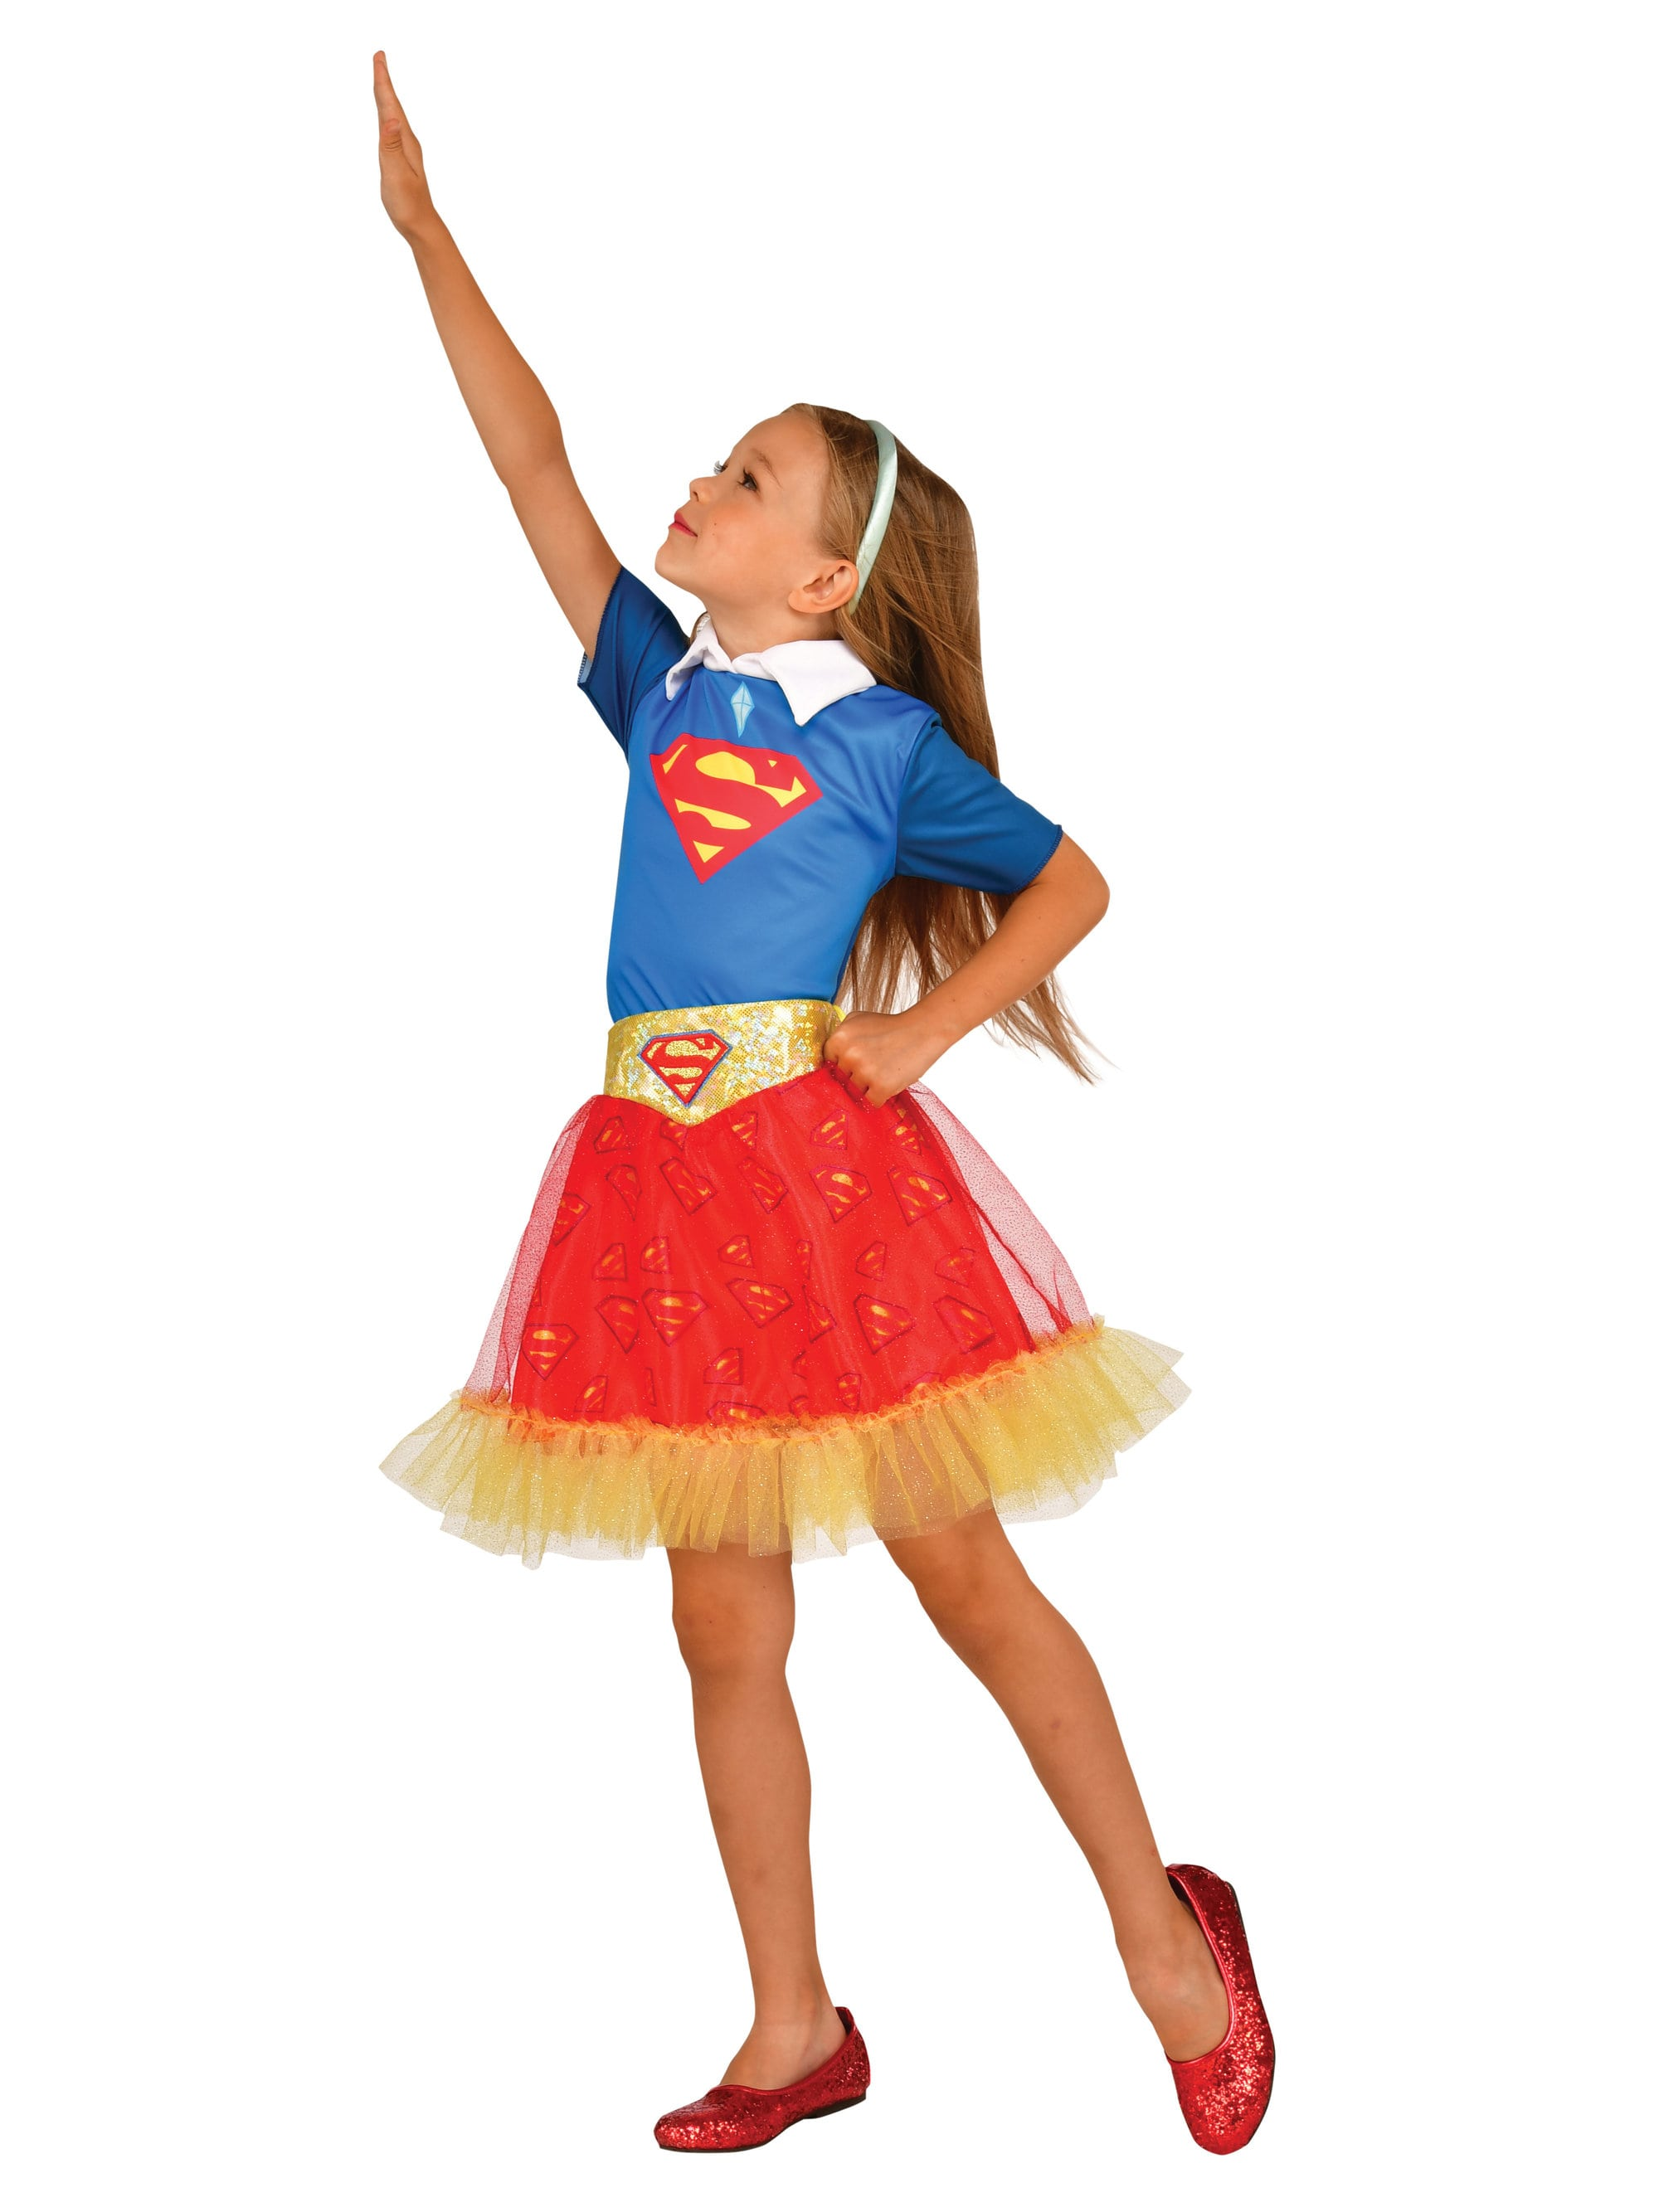 Girlu0027s DC Super Hero Supergirl Skirt - Girls 2018 Halloween Costume Accessories | BuyCostumes.com  sc 1 st  BuyCostumes.com & Girlu0027s DC Super Hero Supergirl Skirt - Girls 2018 Halloween Costume ...